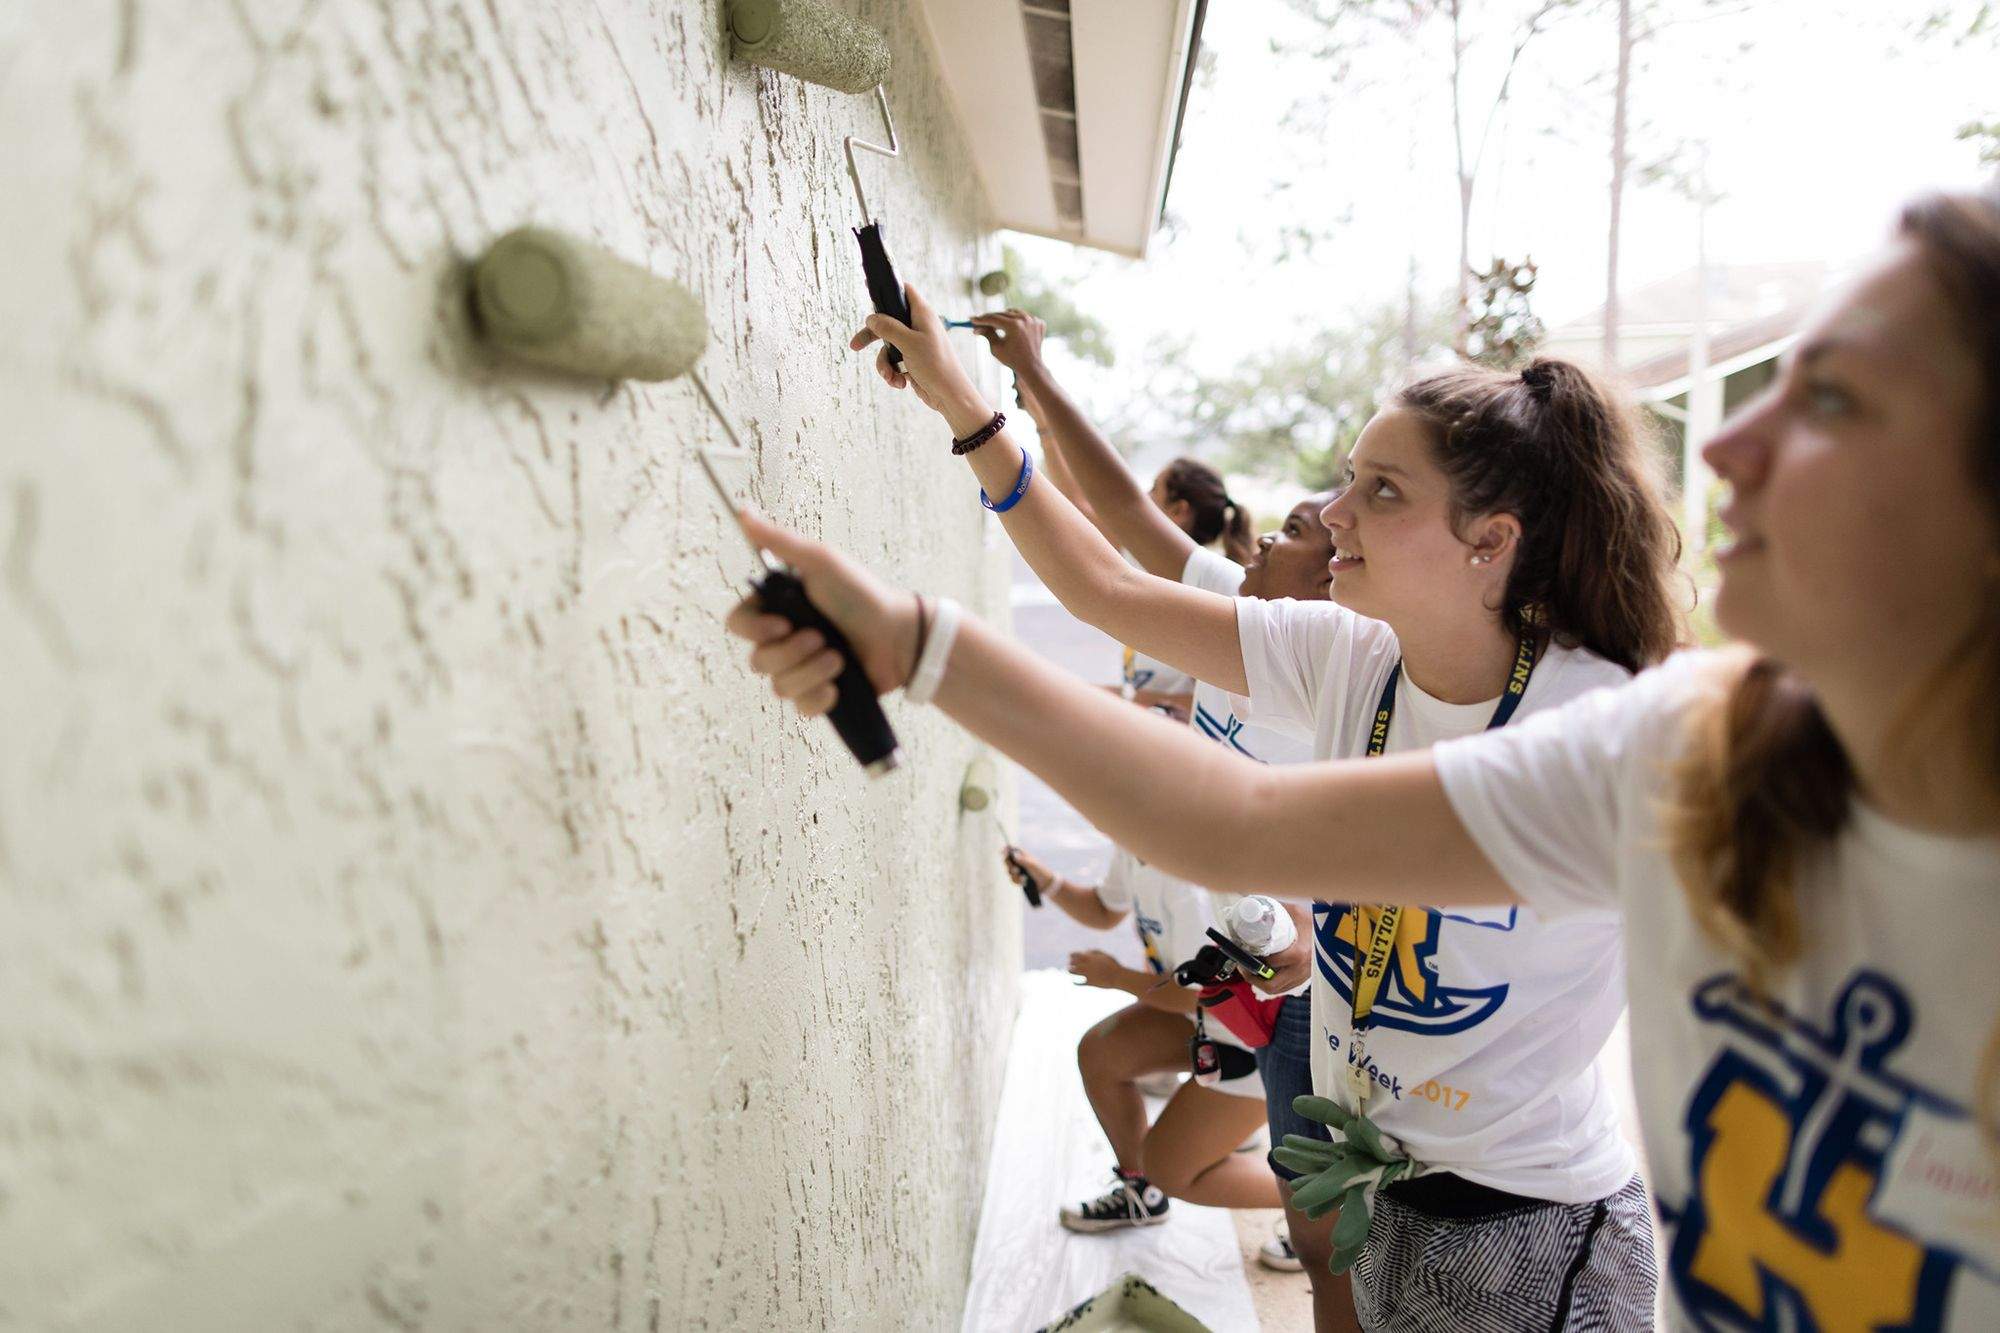 Liberal Arts college students serving others by painting a local school.